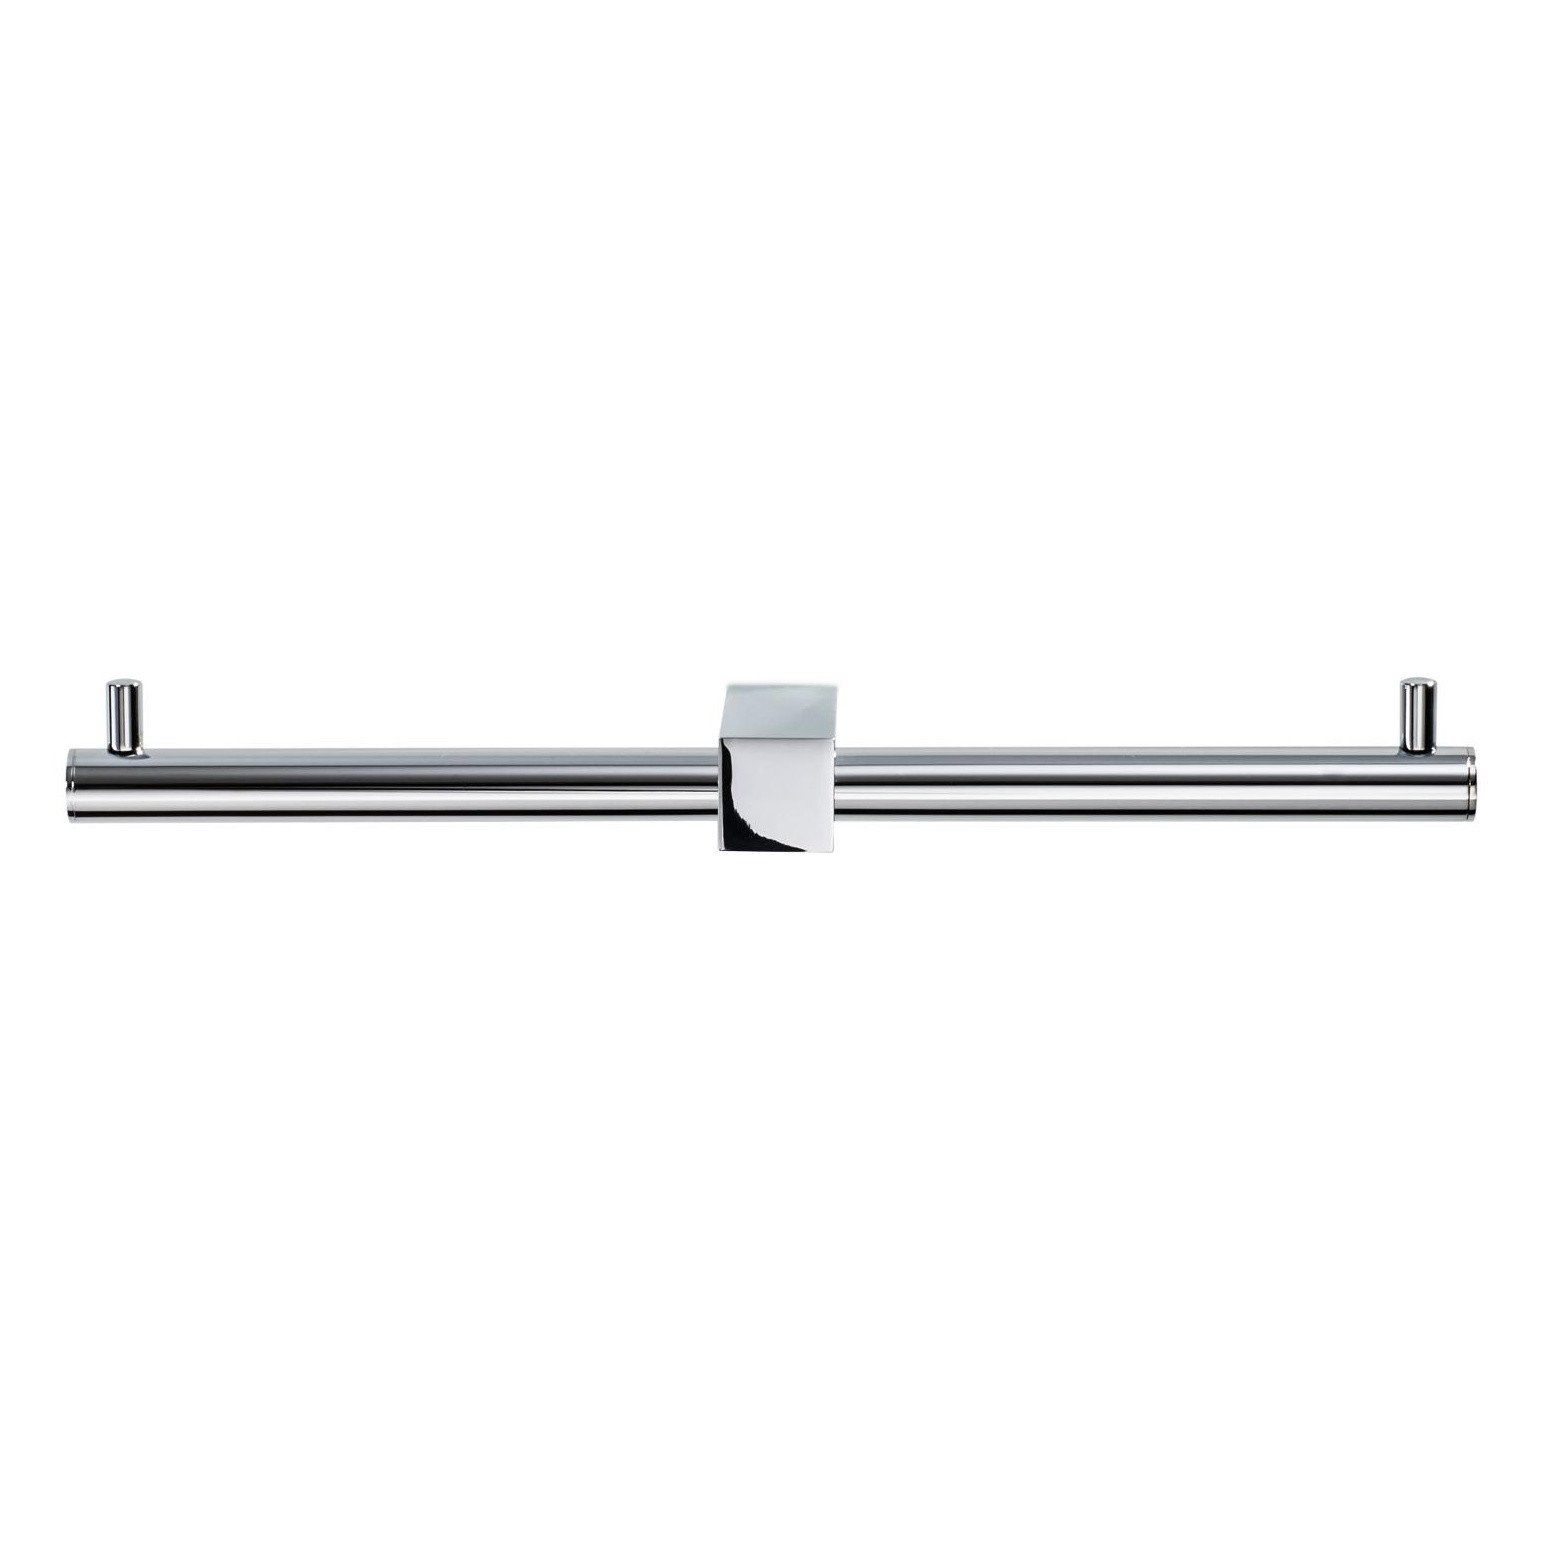 Decor Walther Bloque BQ TPH2 Toilet Paper Holder Double | AmbienteDirect